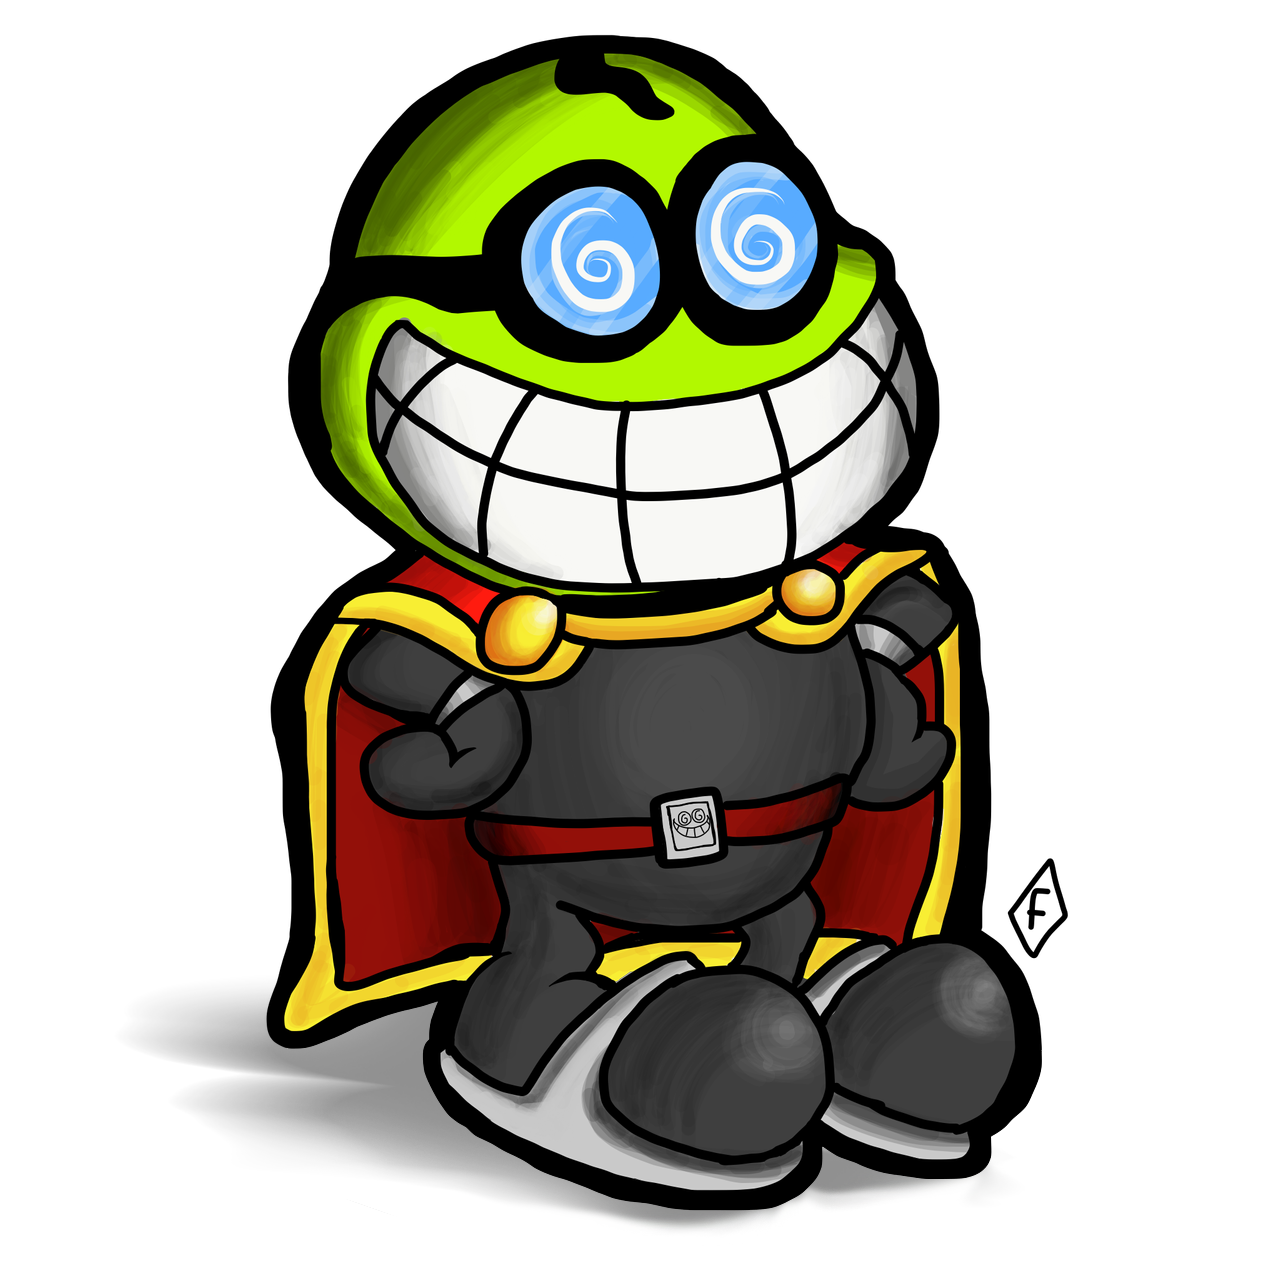 lord_fawful_by_fawfulthegreat64_ddhy1h0-fullview.png